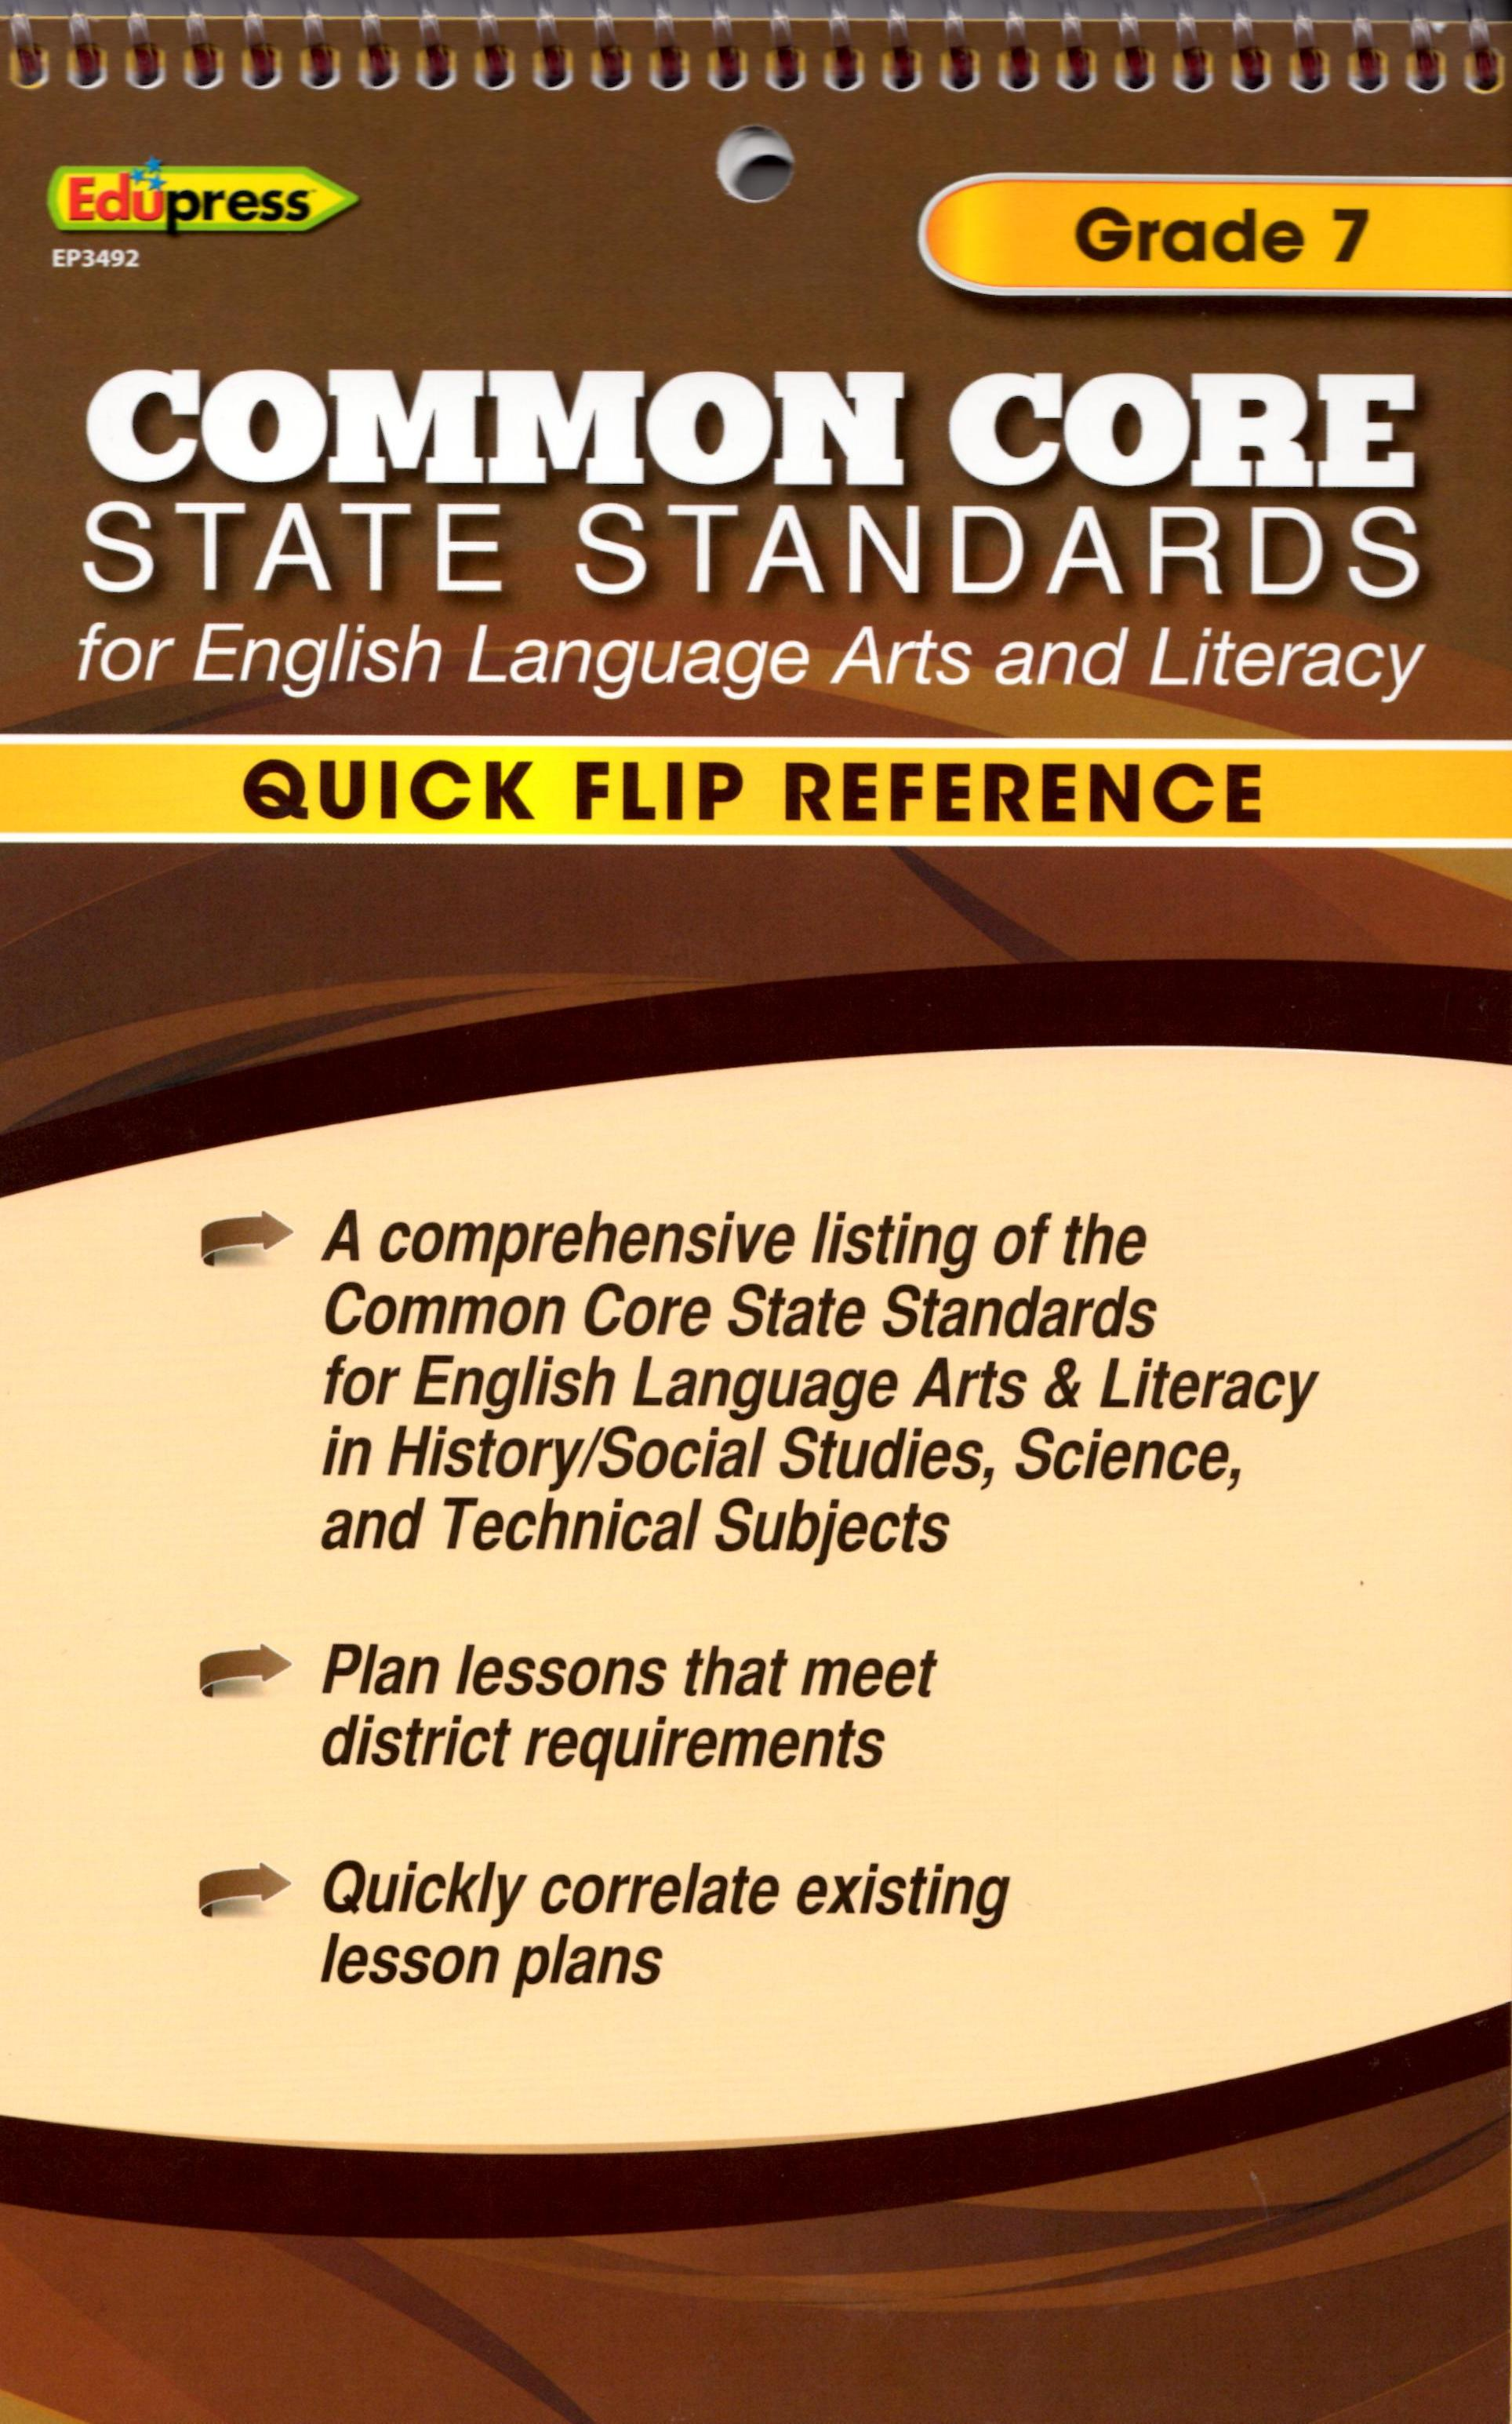 Common Core State Standards Grade 7 Flip Chart